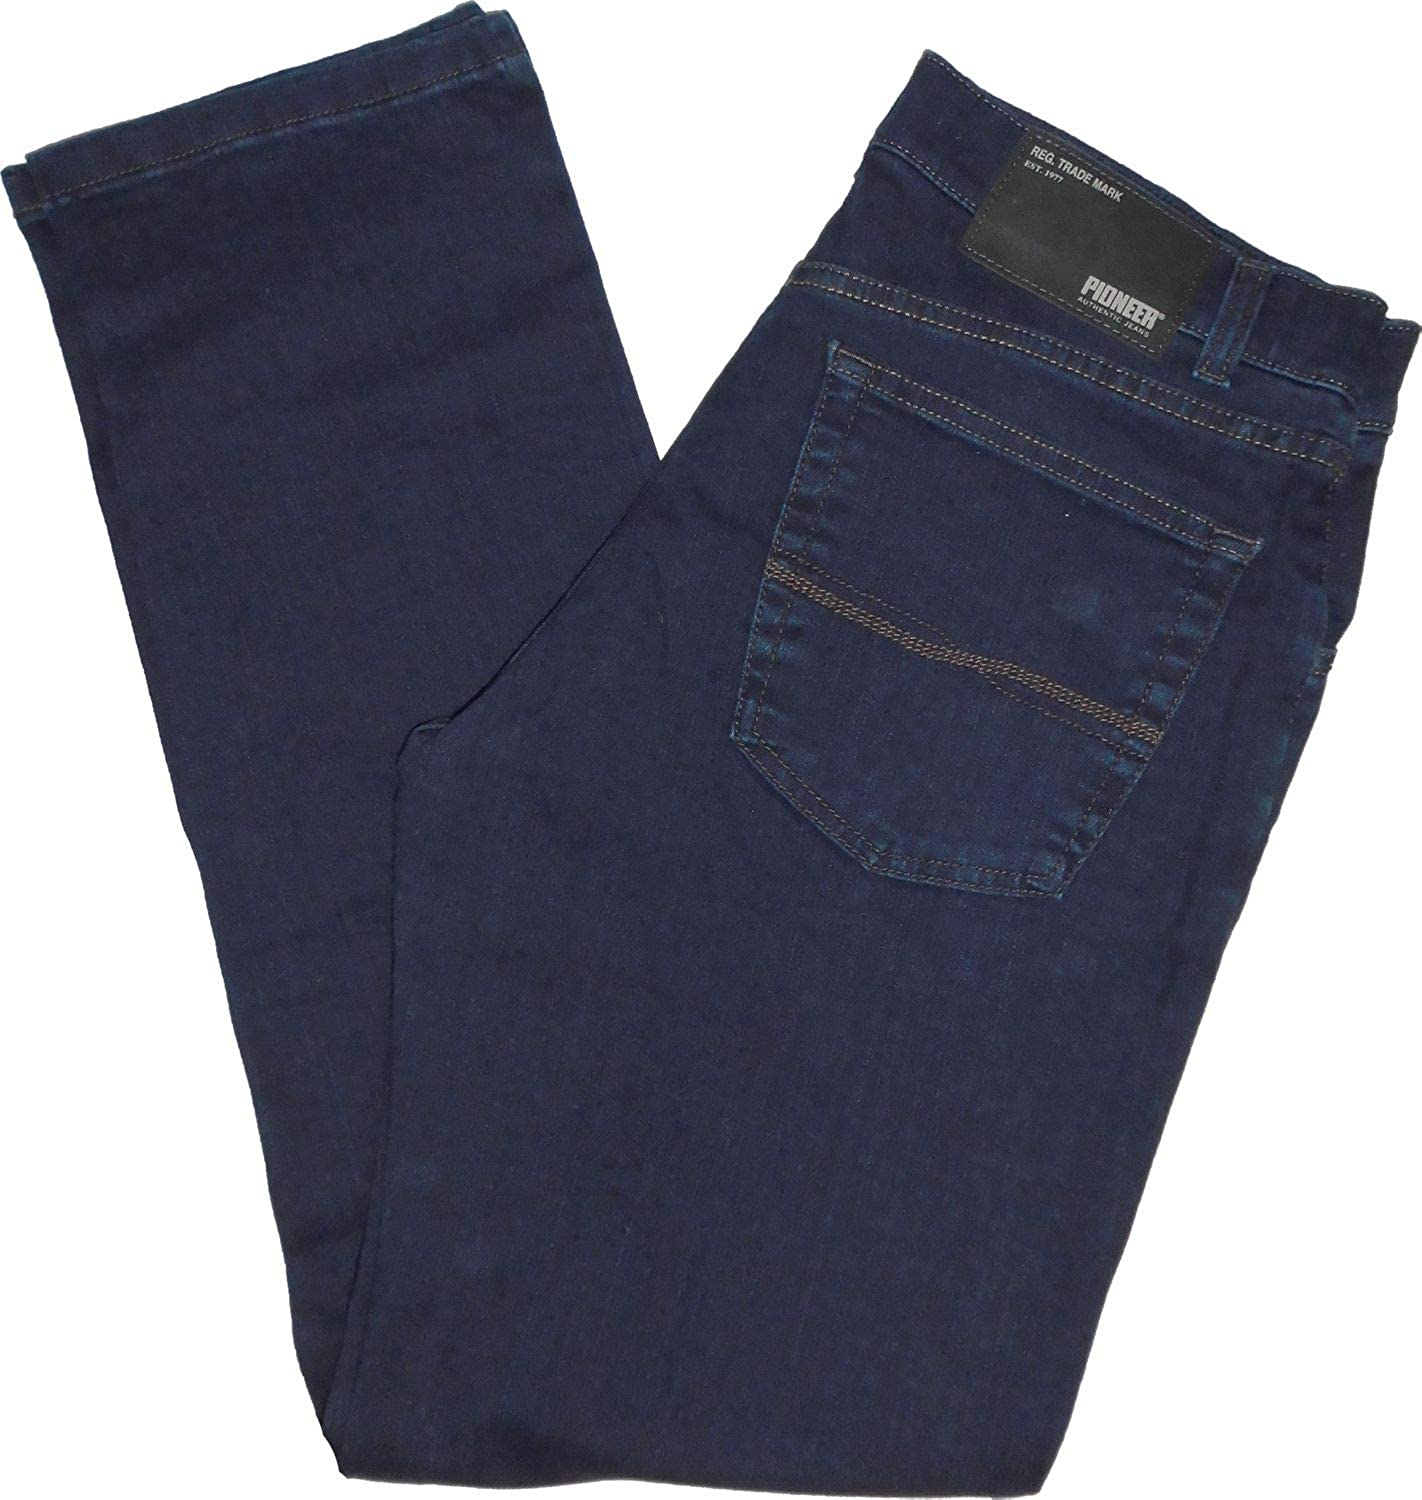 Pioneer Stretch Jeans Art. 9733.02.1144 Ron - Piedra Oscura ...